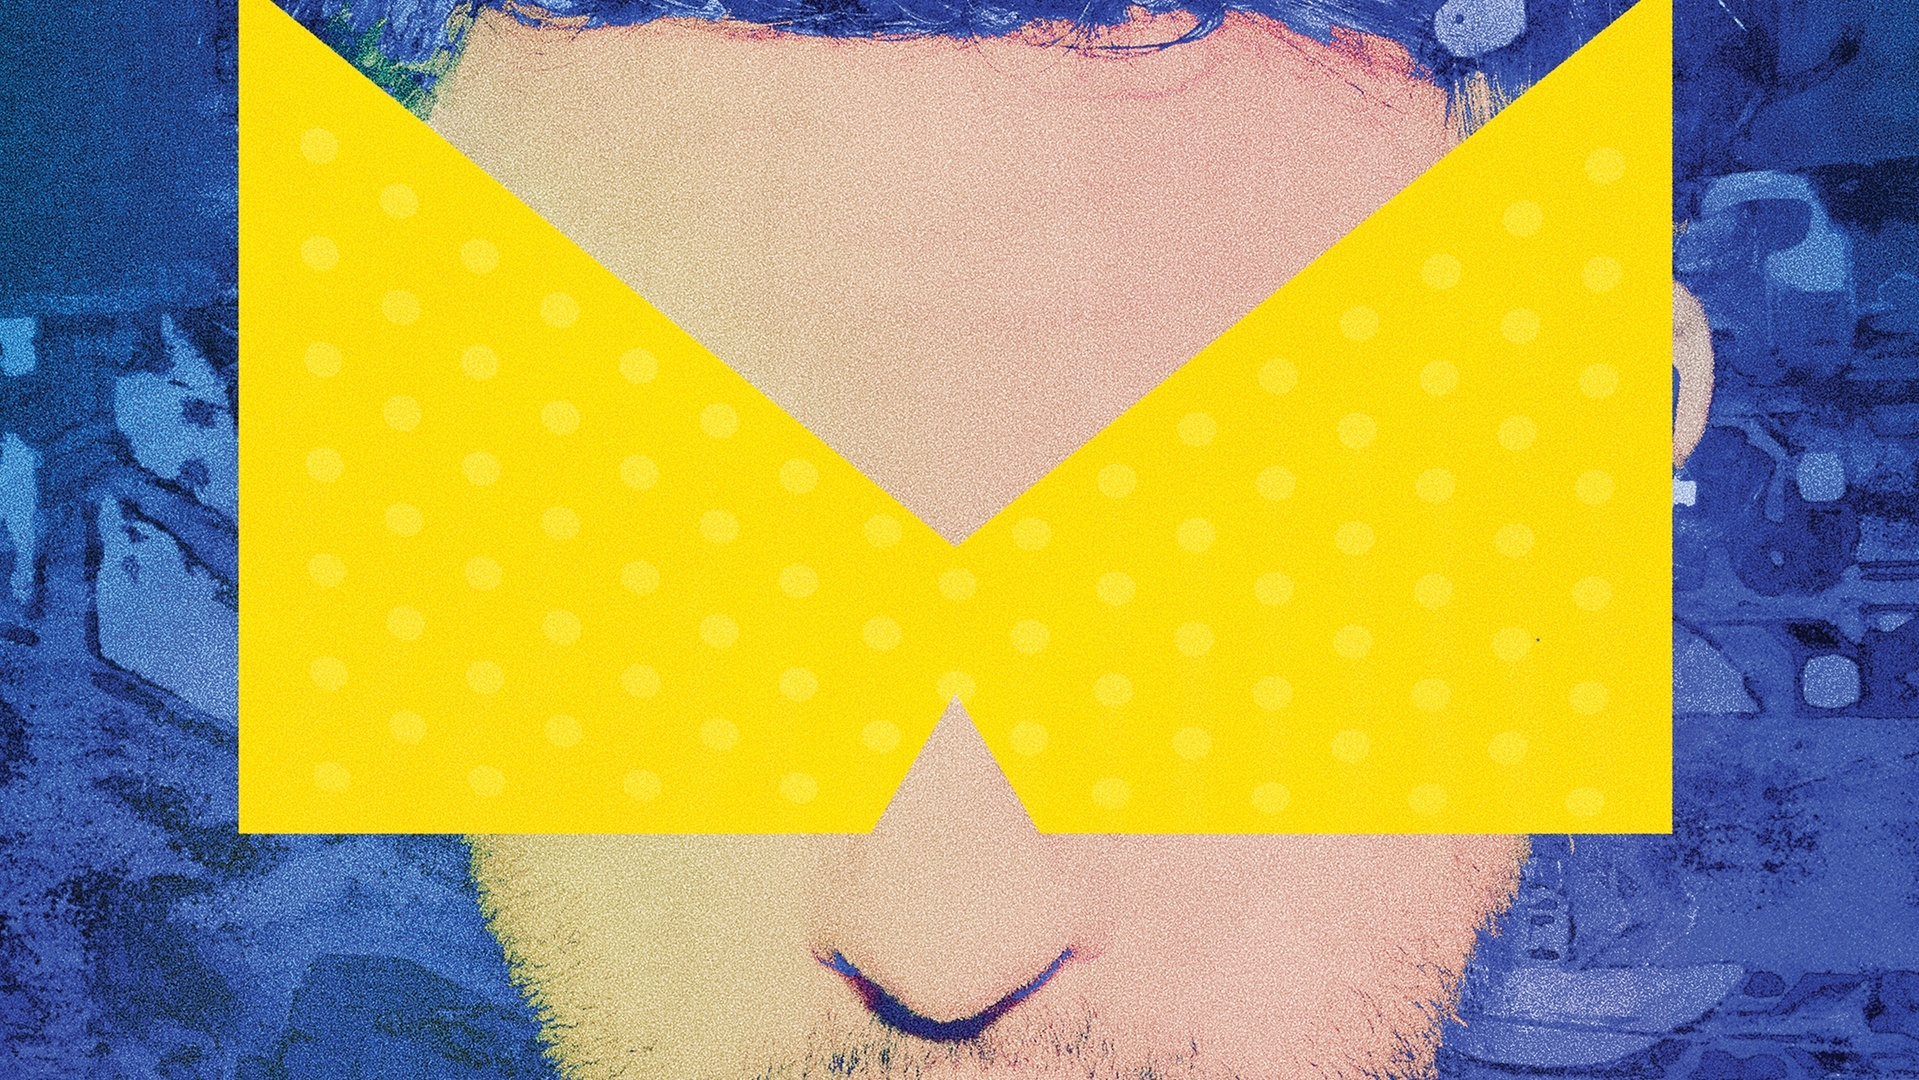 -M- (Matthieu Chedid) Live in Singapore